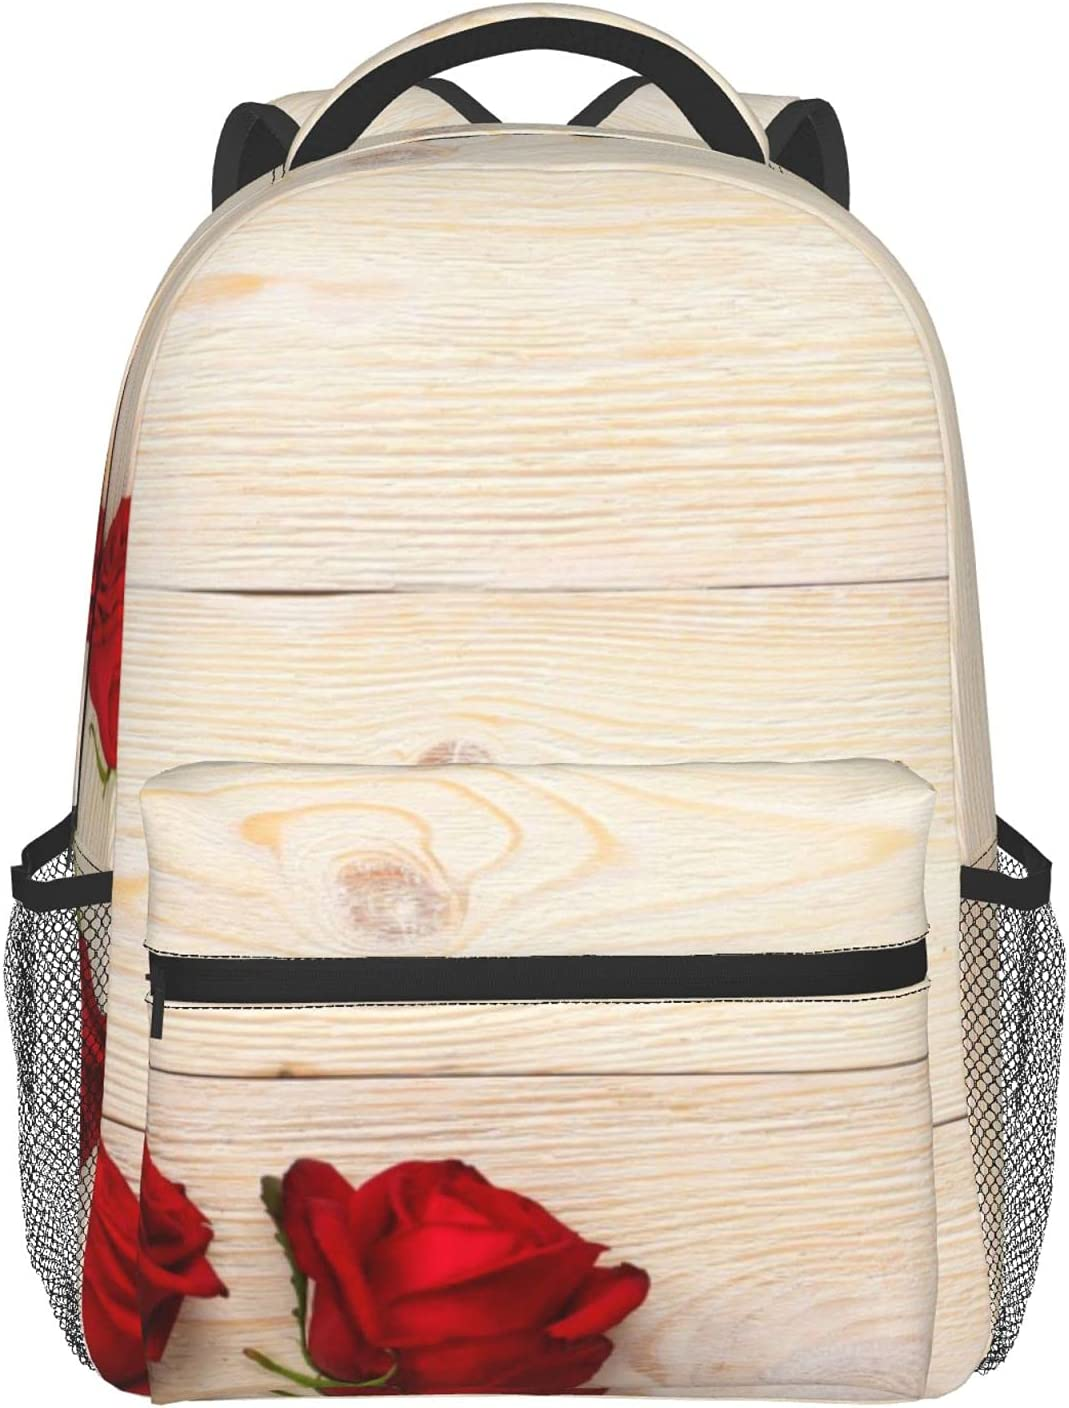 5 Red Roses Over White Rustic Adult Children'S Wood Planks Handh trend rank OFFicial mail order